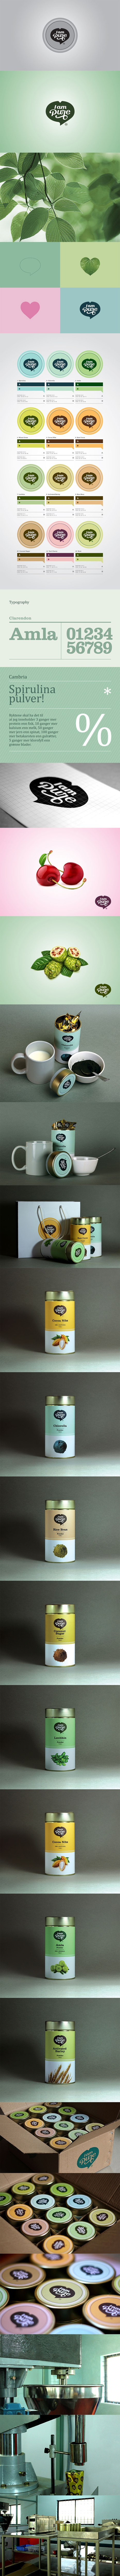 I am Pure Logo & Packaging @Behance